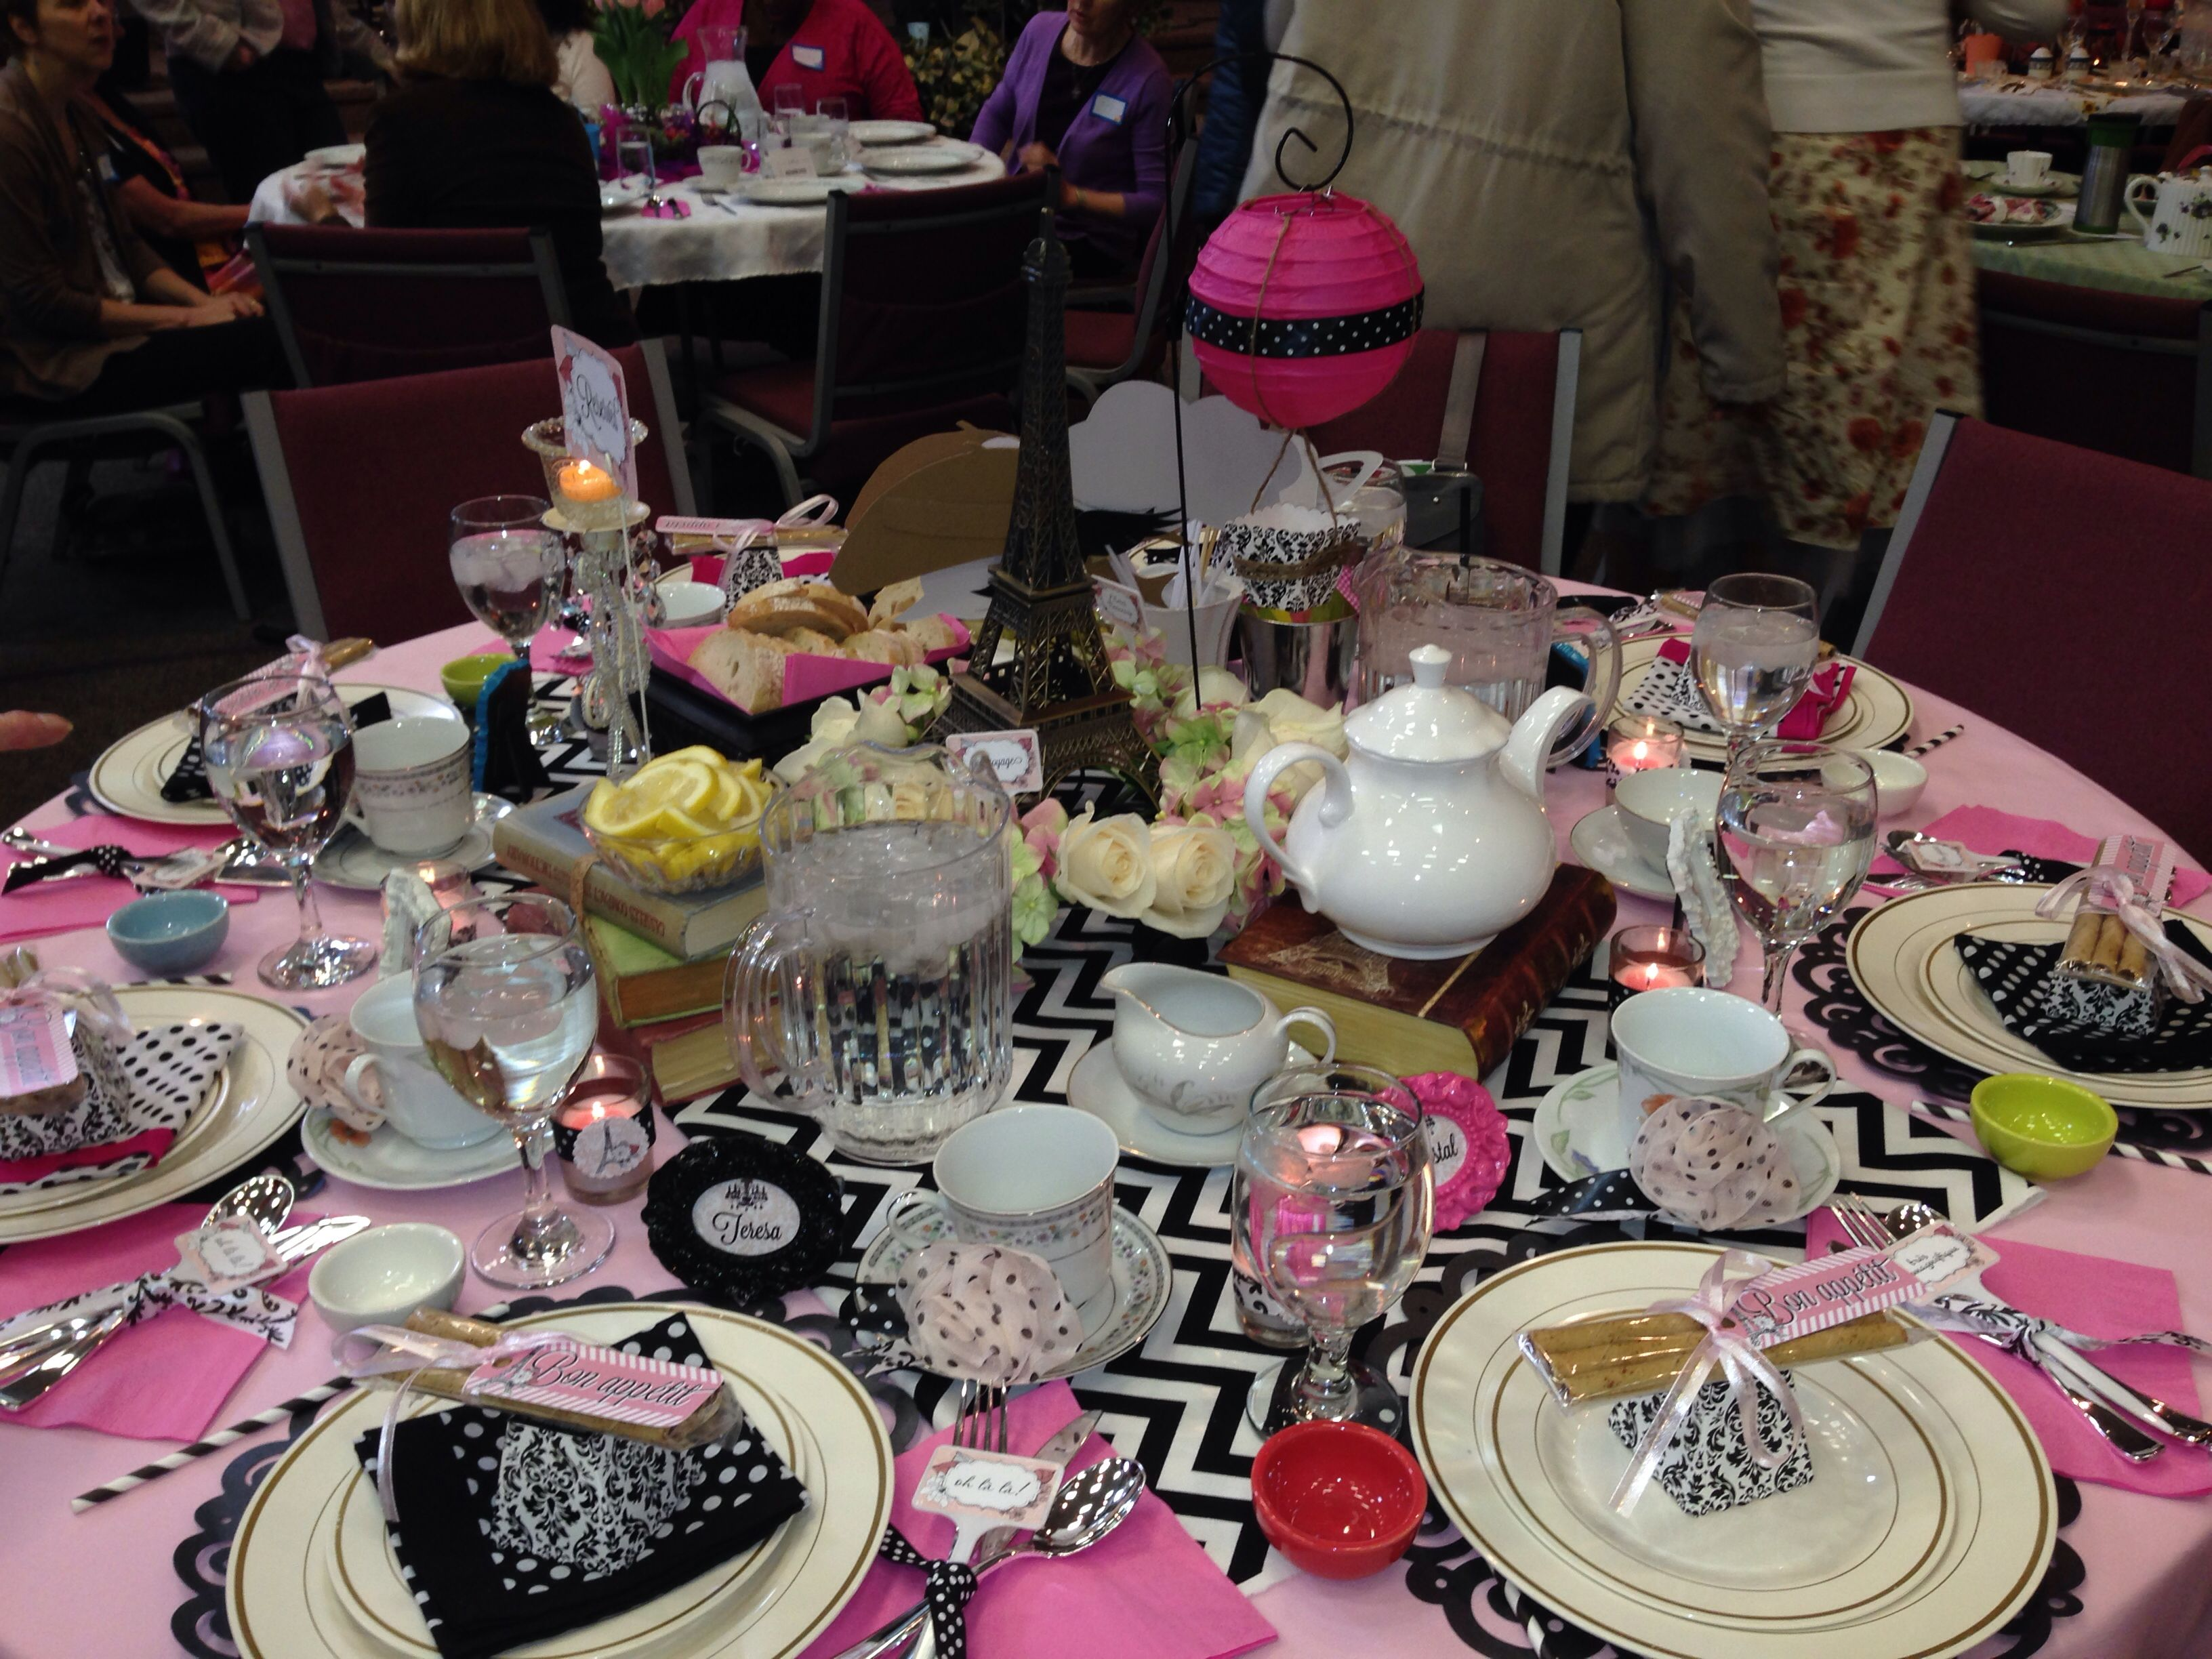 12 paris themed table for womens tea party event at church tables